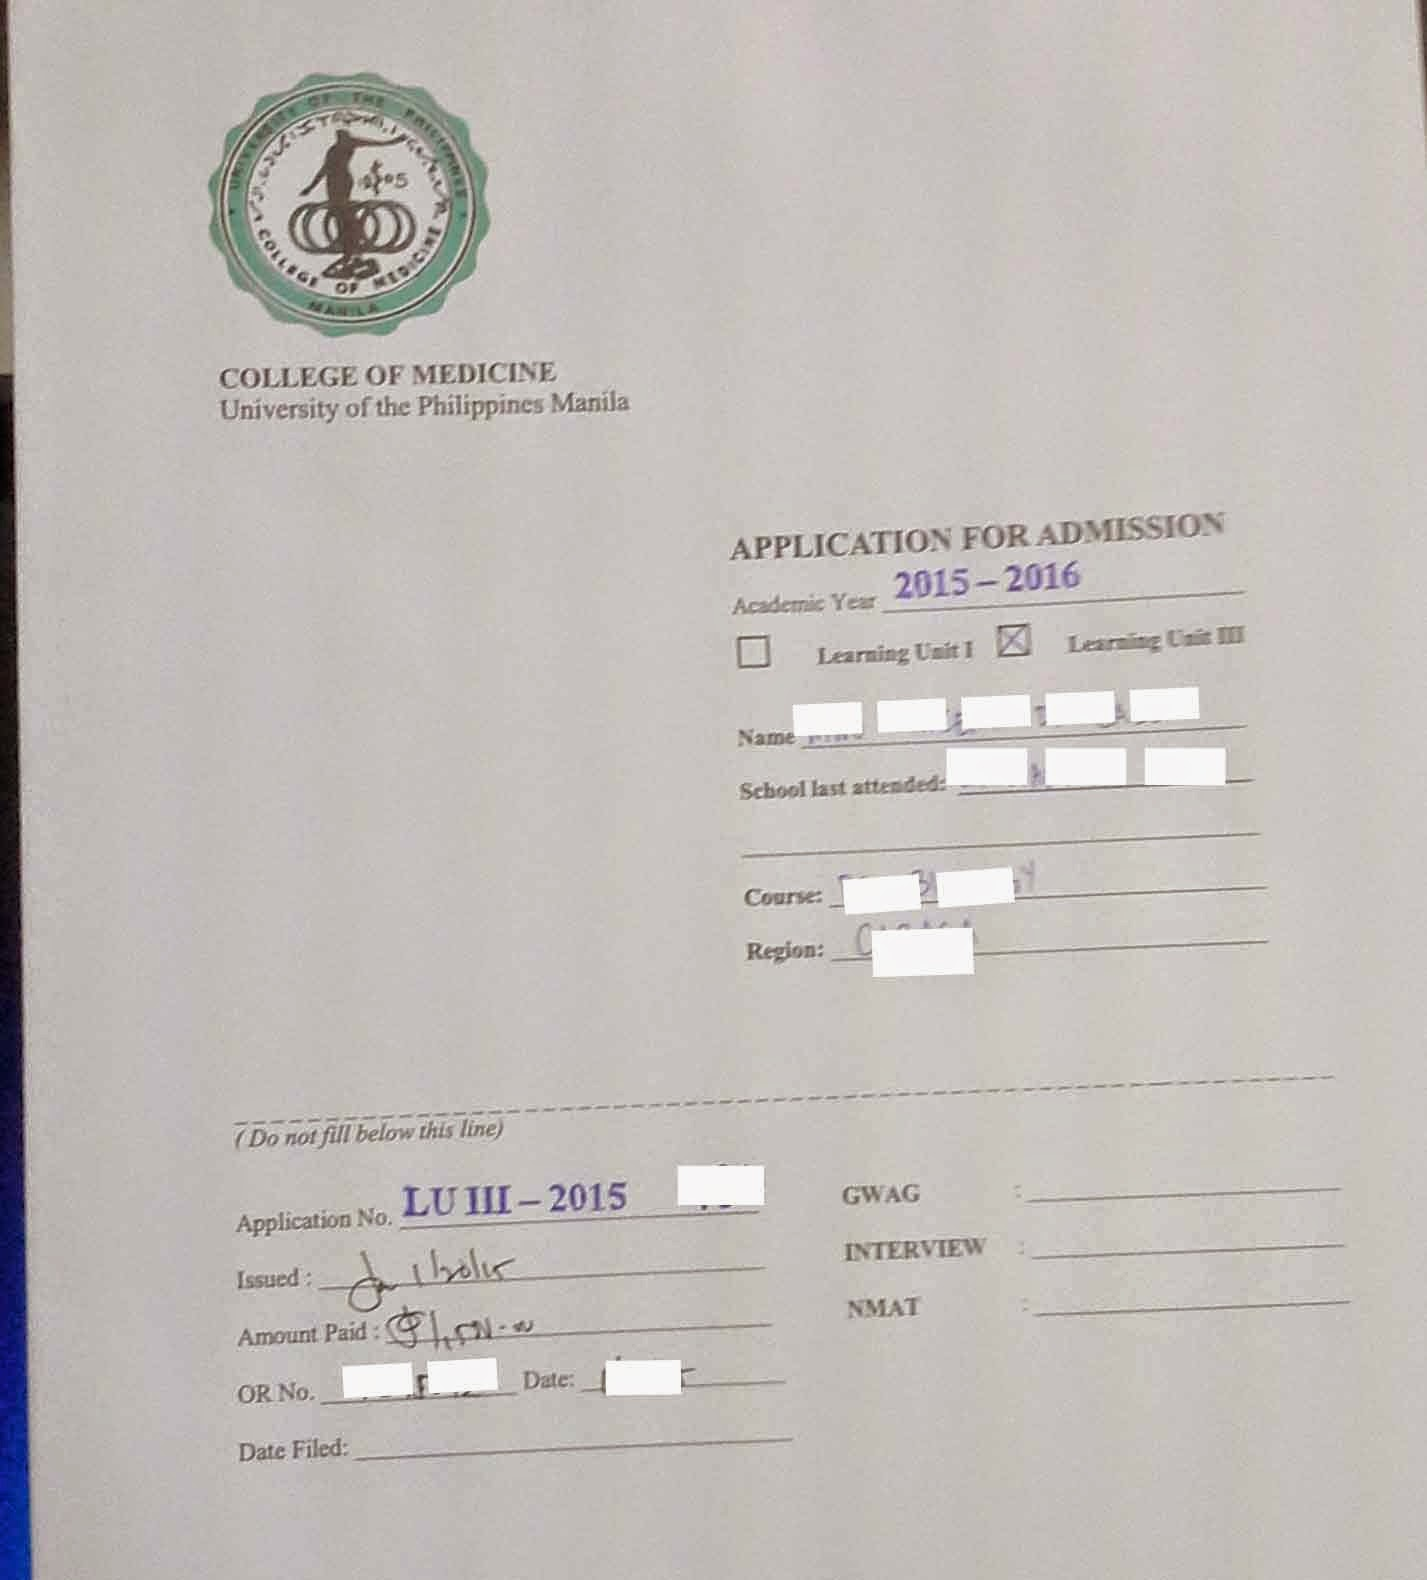 UP College Of Medicine Application Form